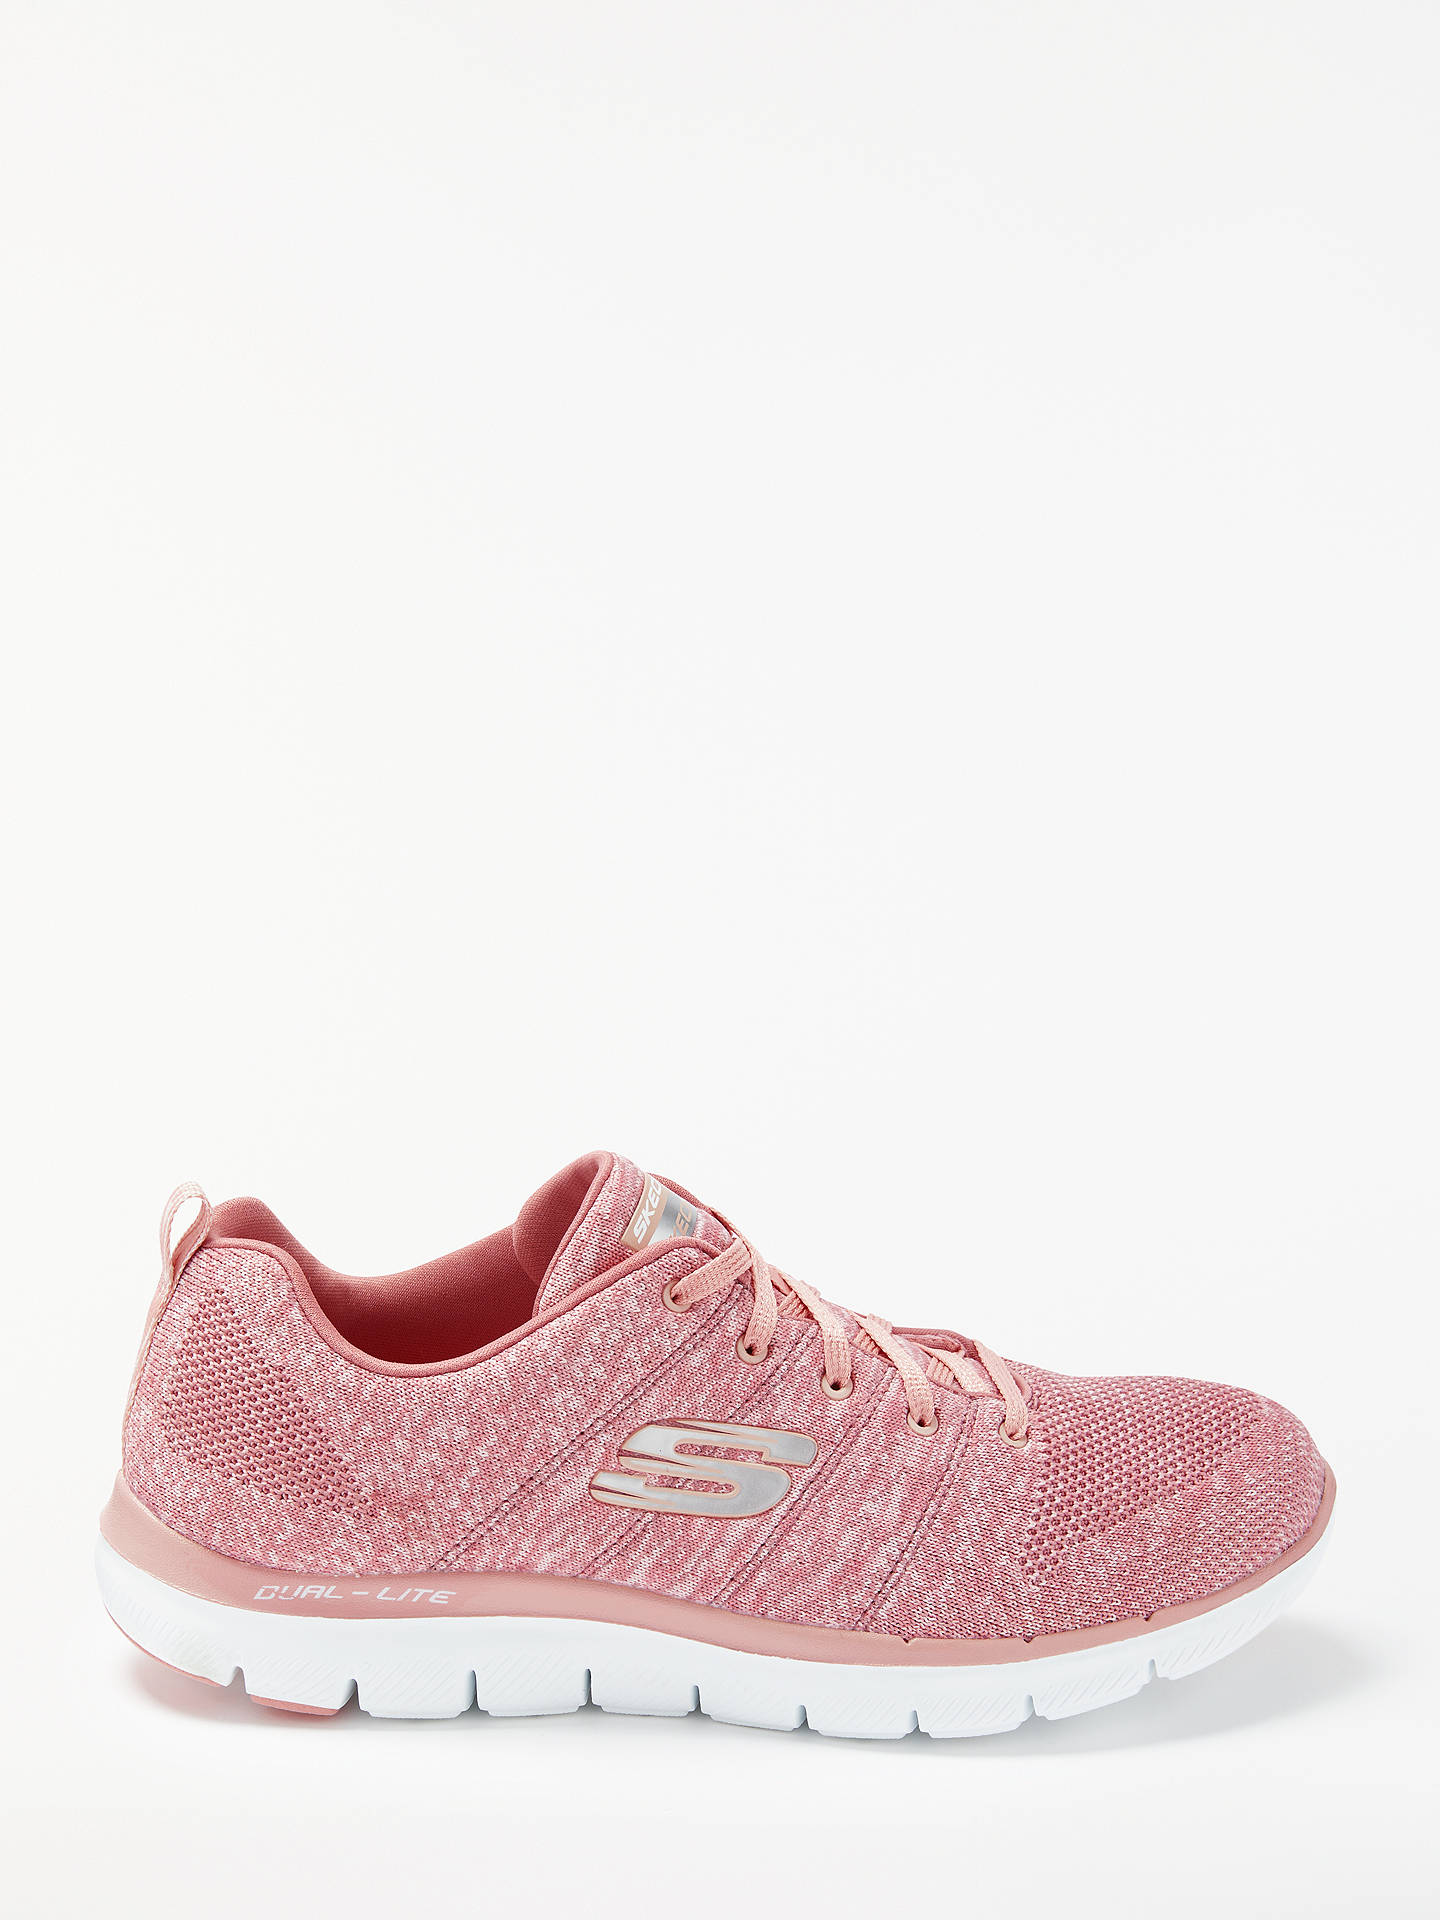 skechers pink trainers